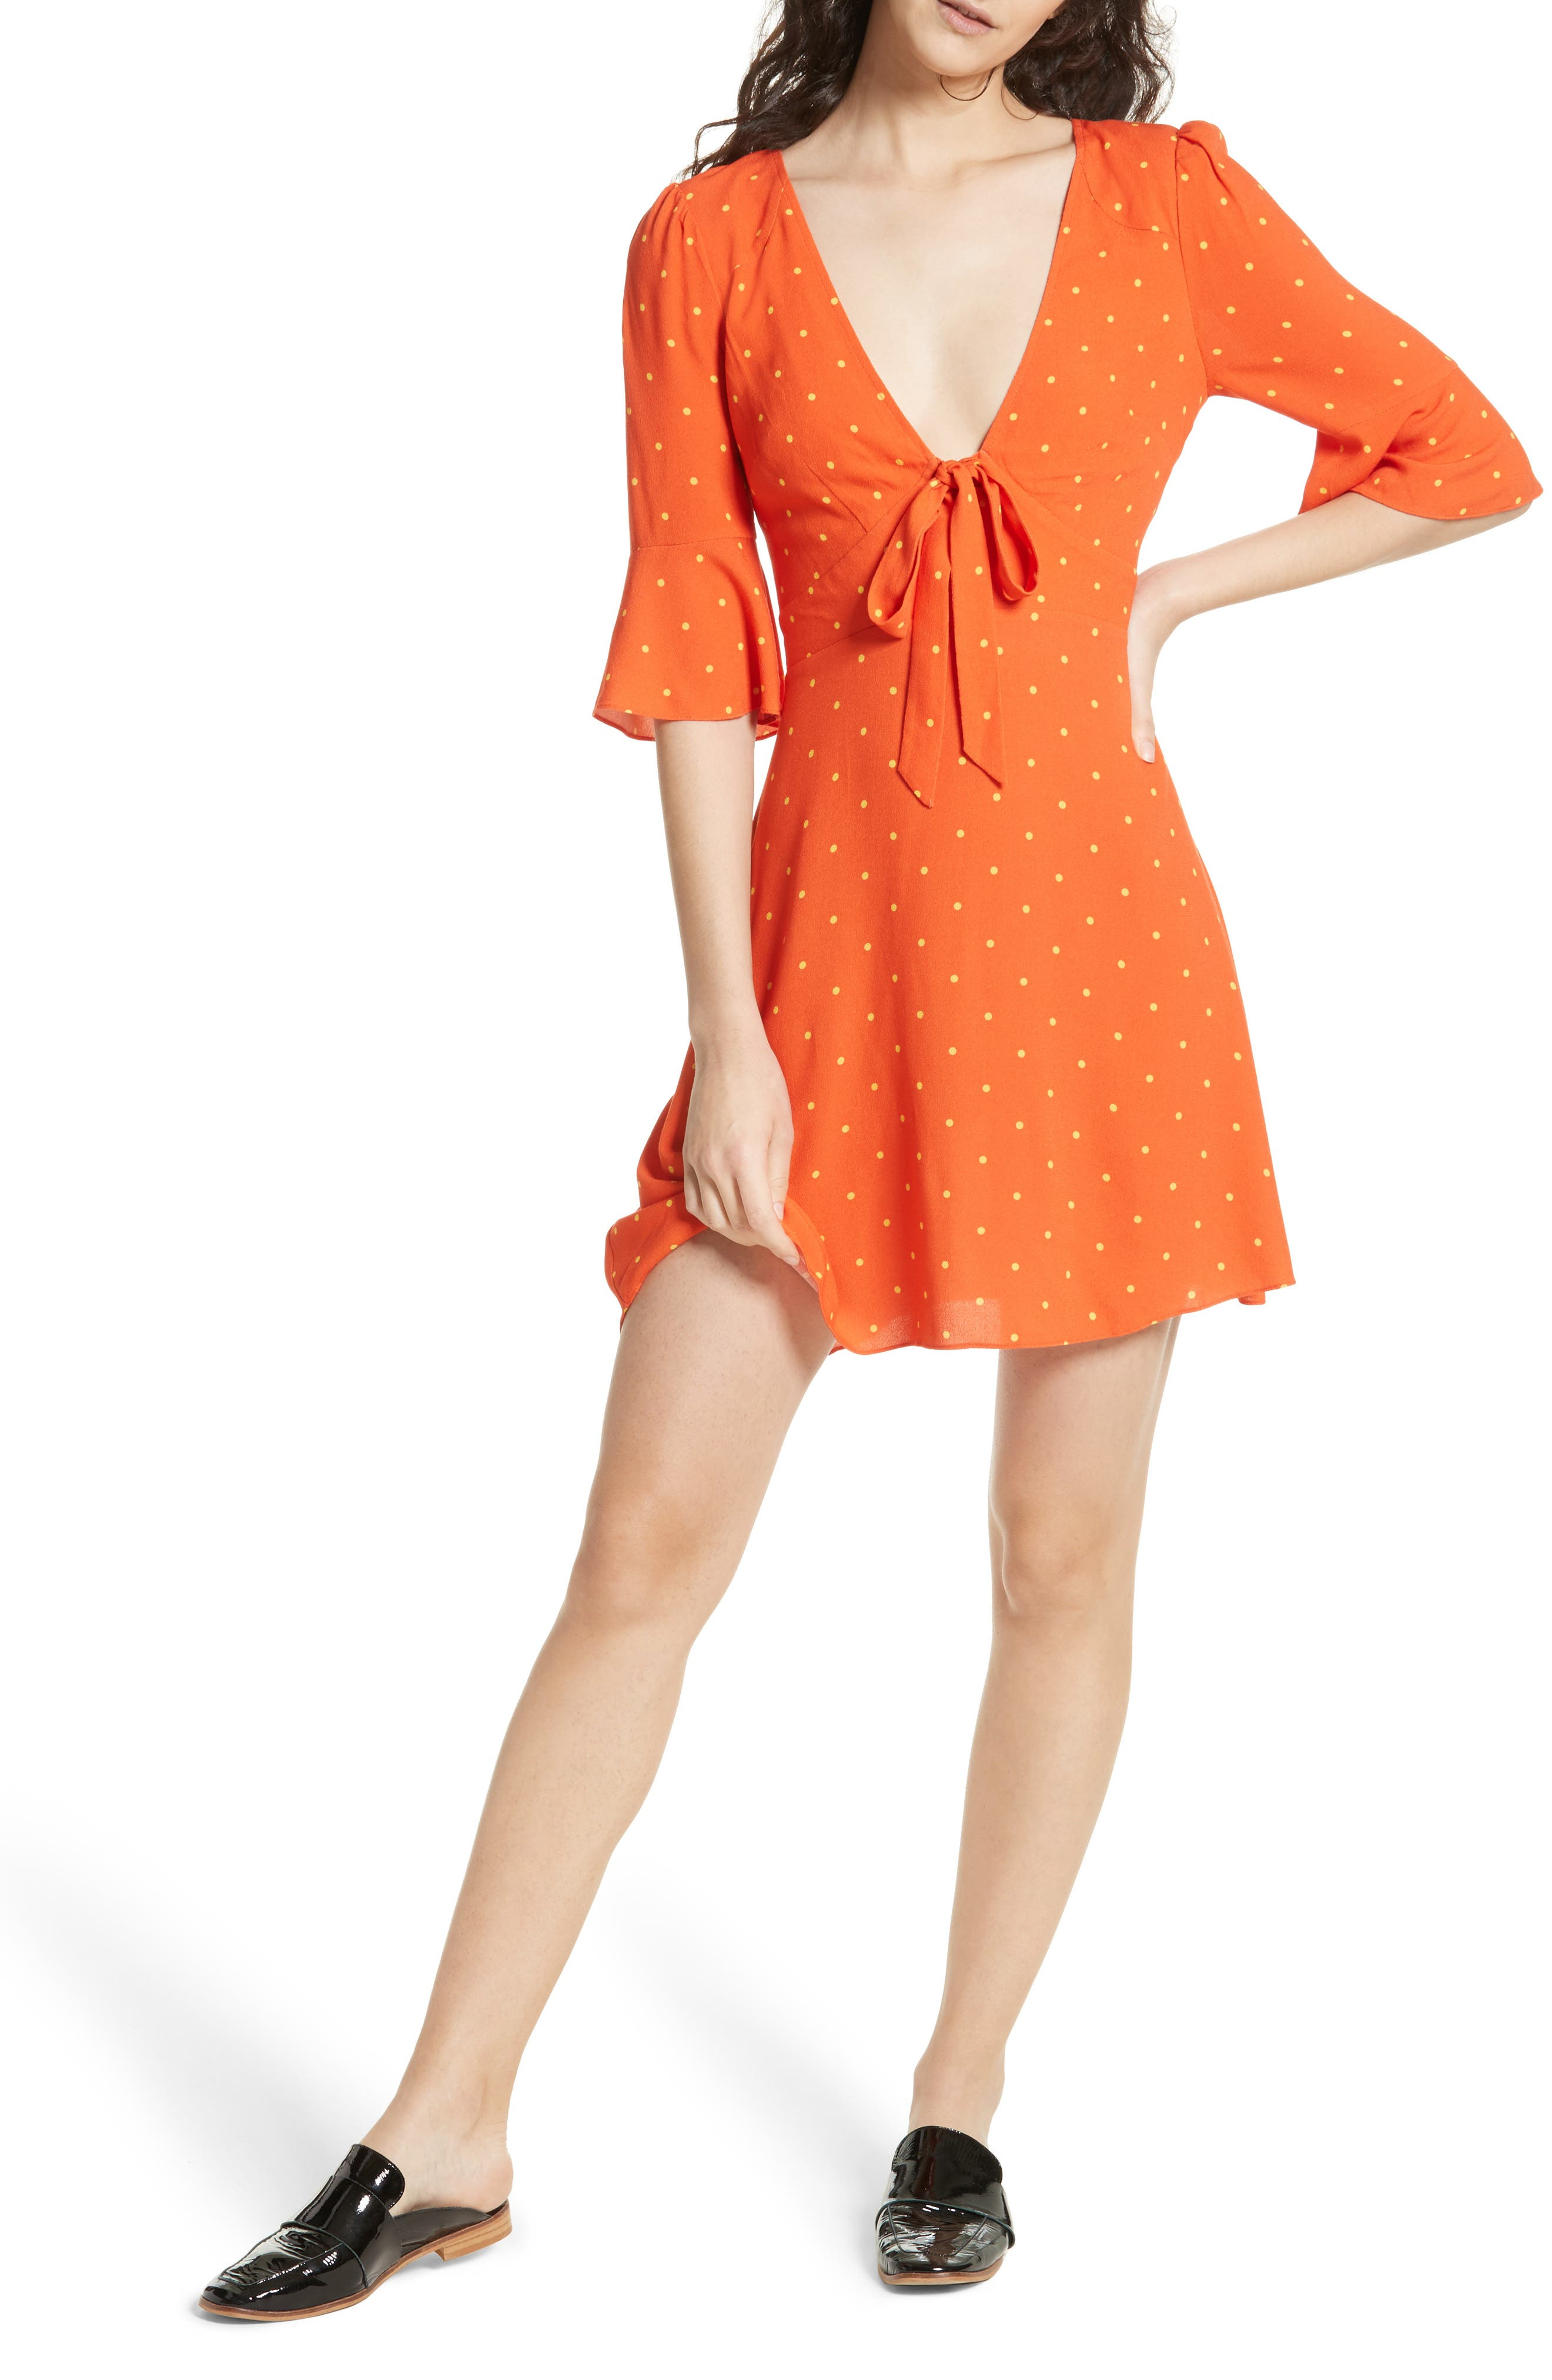 All Yours Minidress,                             Main thumbnail 1, color,                             Red Combo